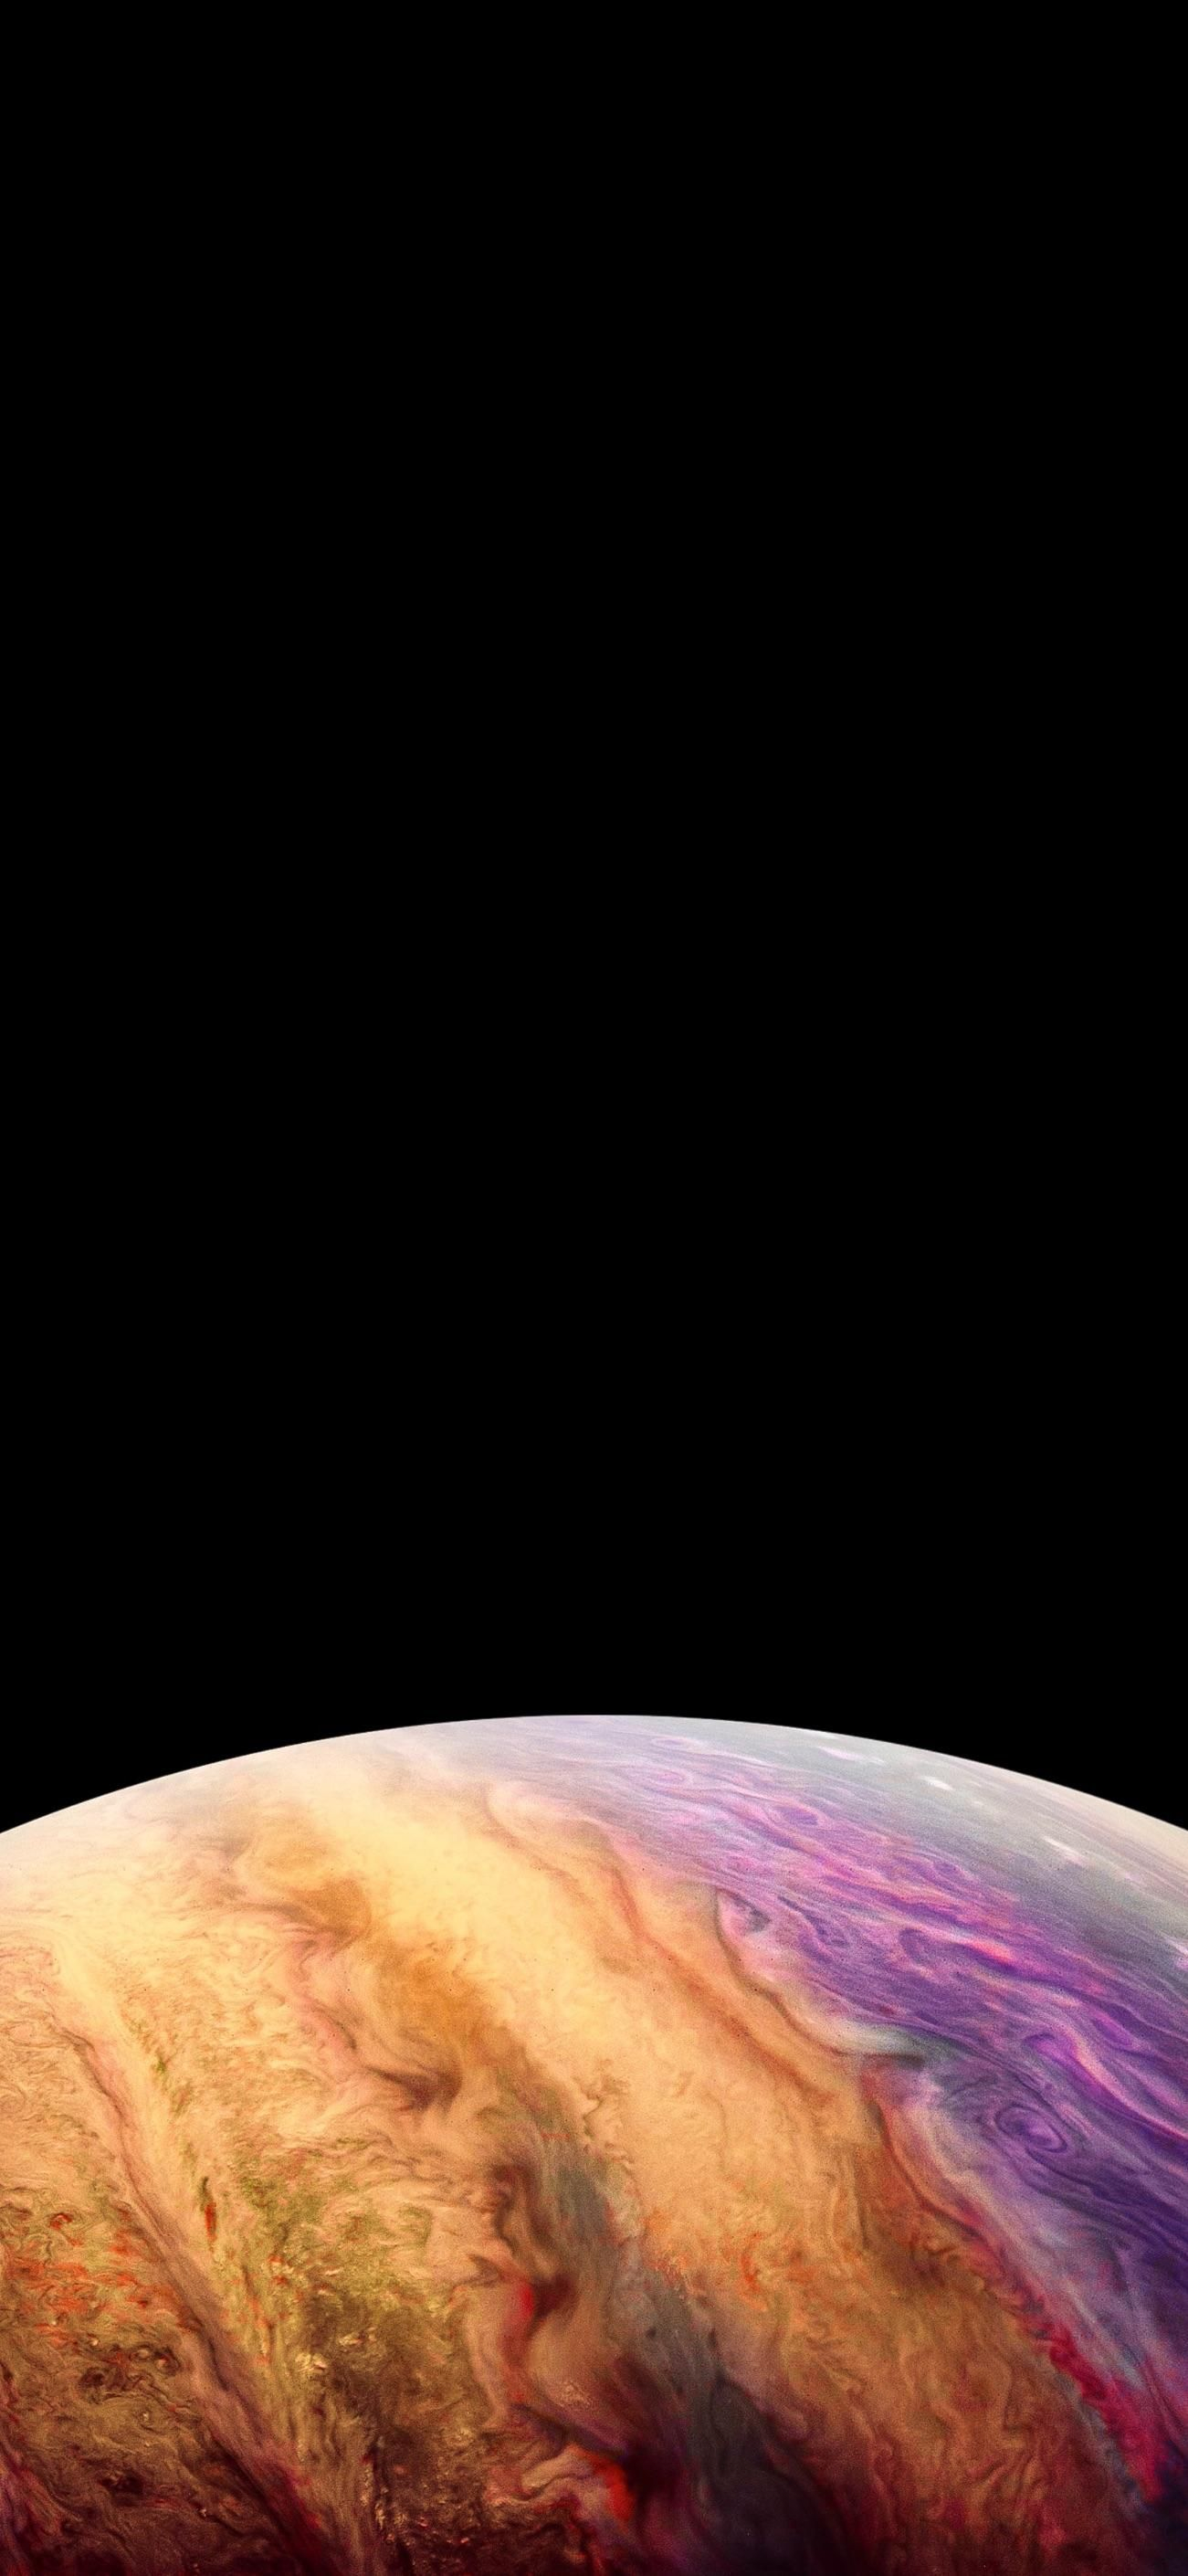 Iphone Xs Alternative Wallpaper V2 Fond Ecran Iphone Ecran